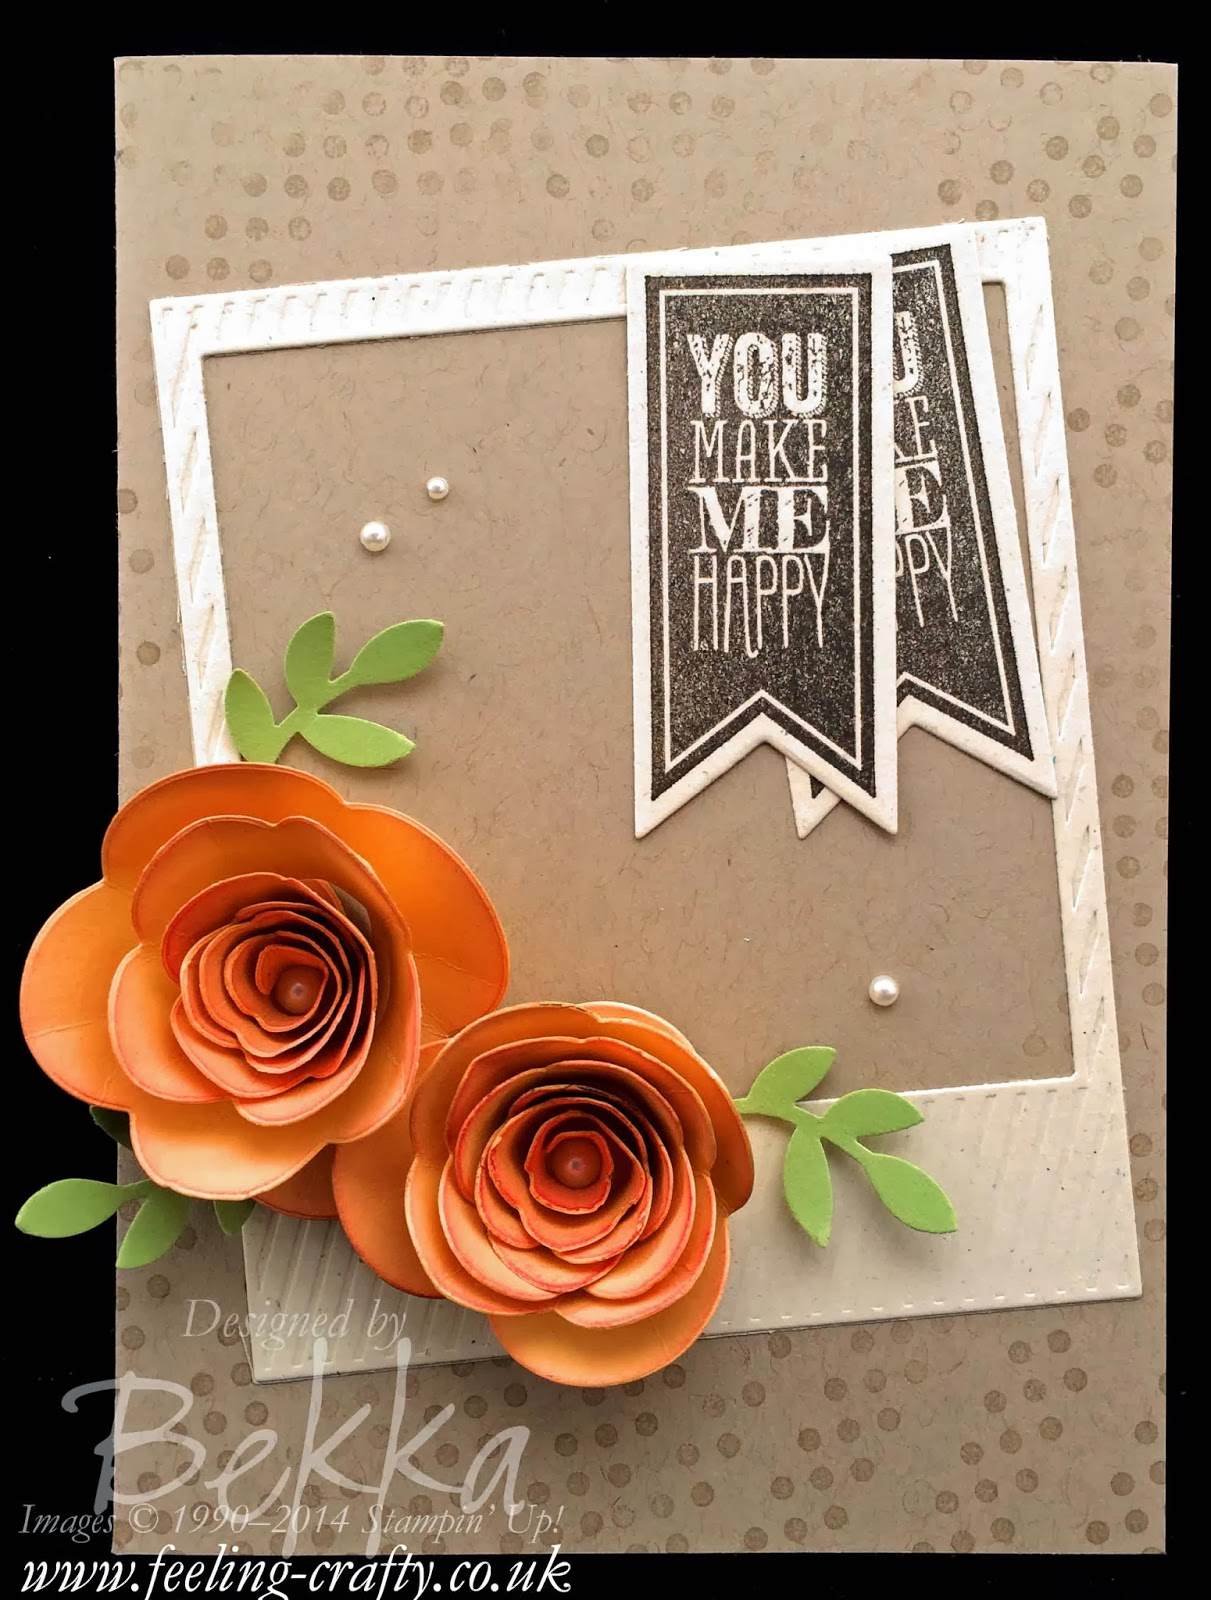 Perfect Pennants and Spiral Flowers card that was inspired by some beautiful flowers - check it out here